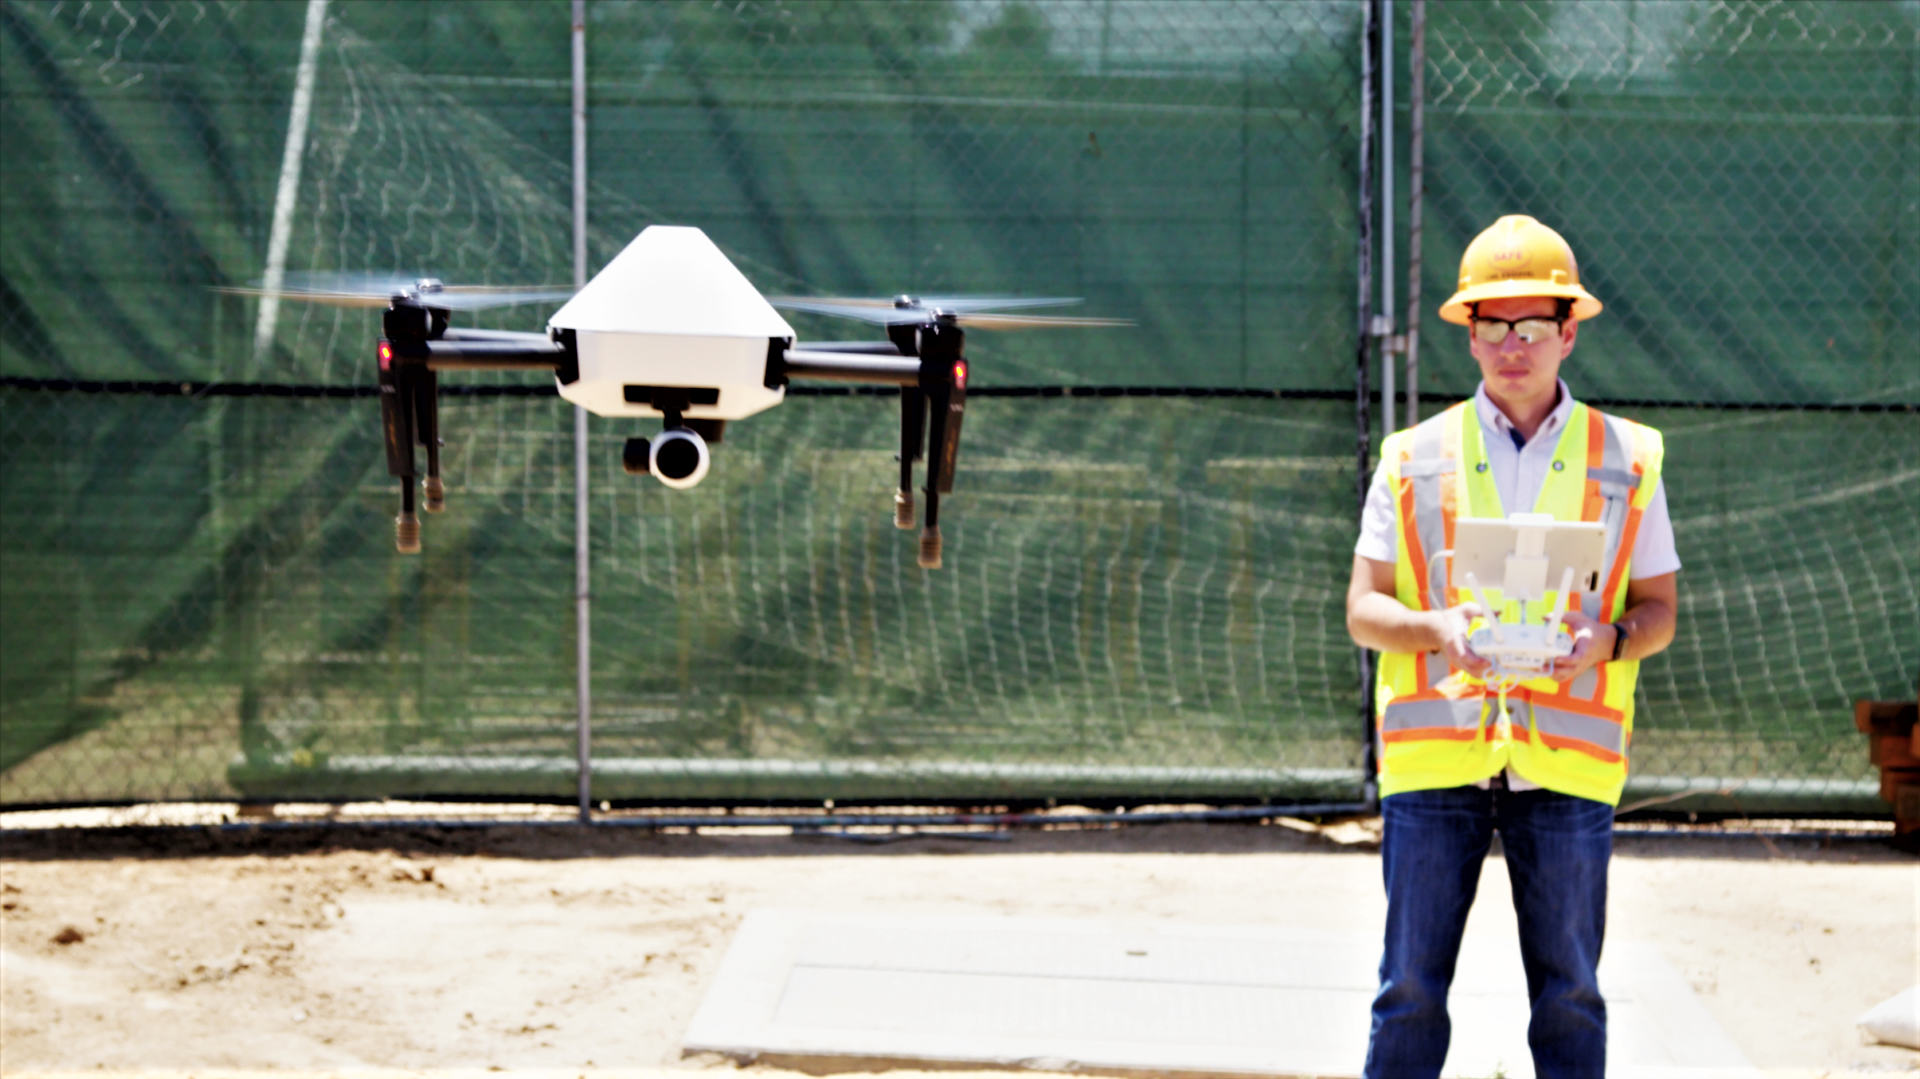 Komatsu buys 1,000 drones from Chinese drone manufacturer